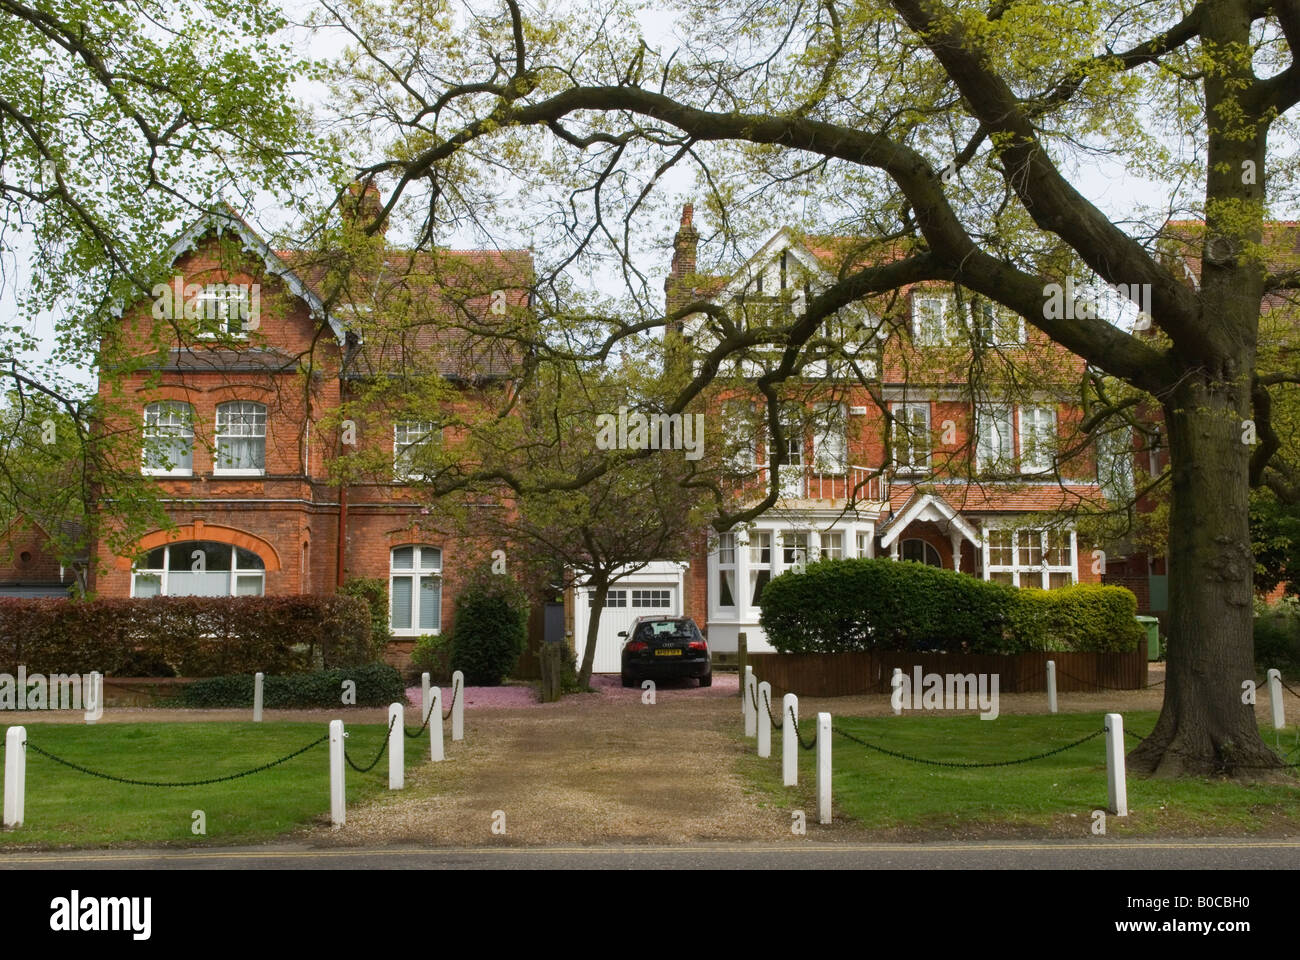 'Dulwich Village'  South London SE21 London UK Large Victorian family homes 'College Road' HOMER - Stock Image